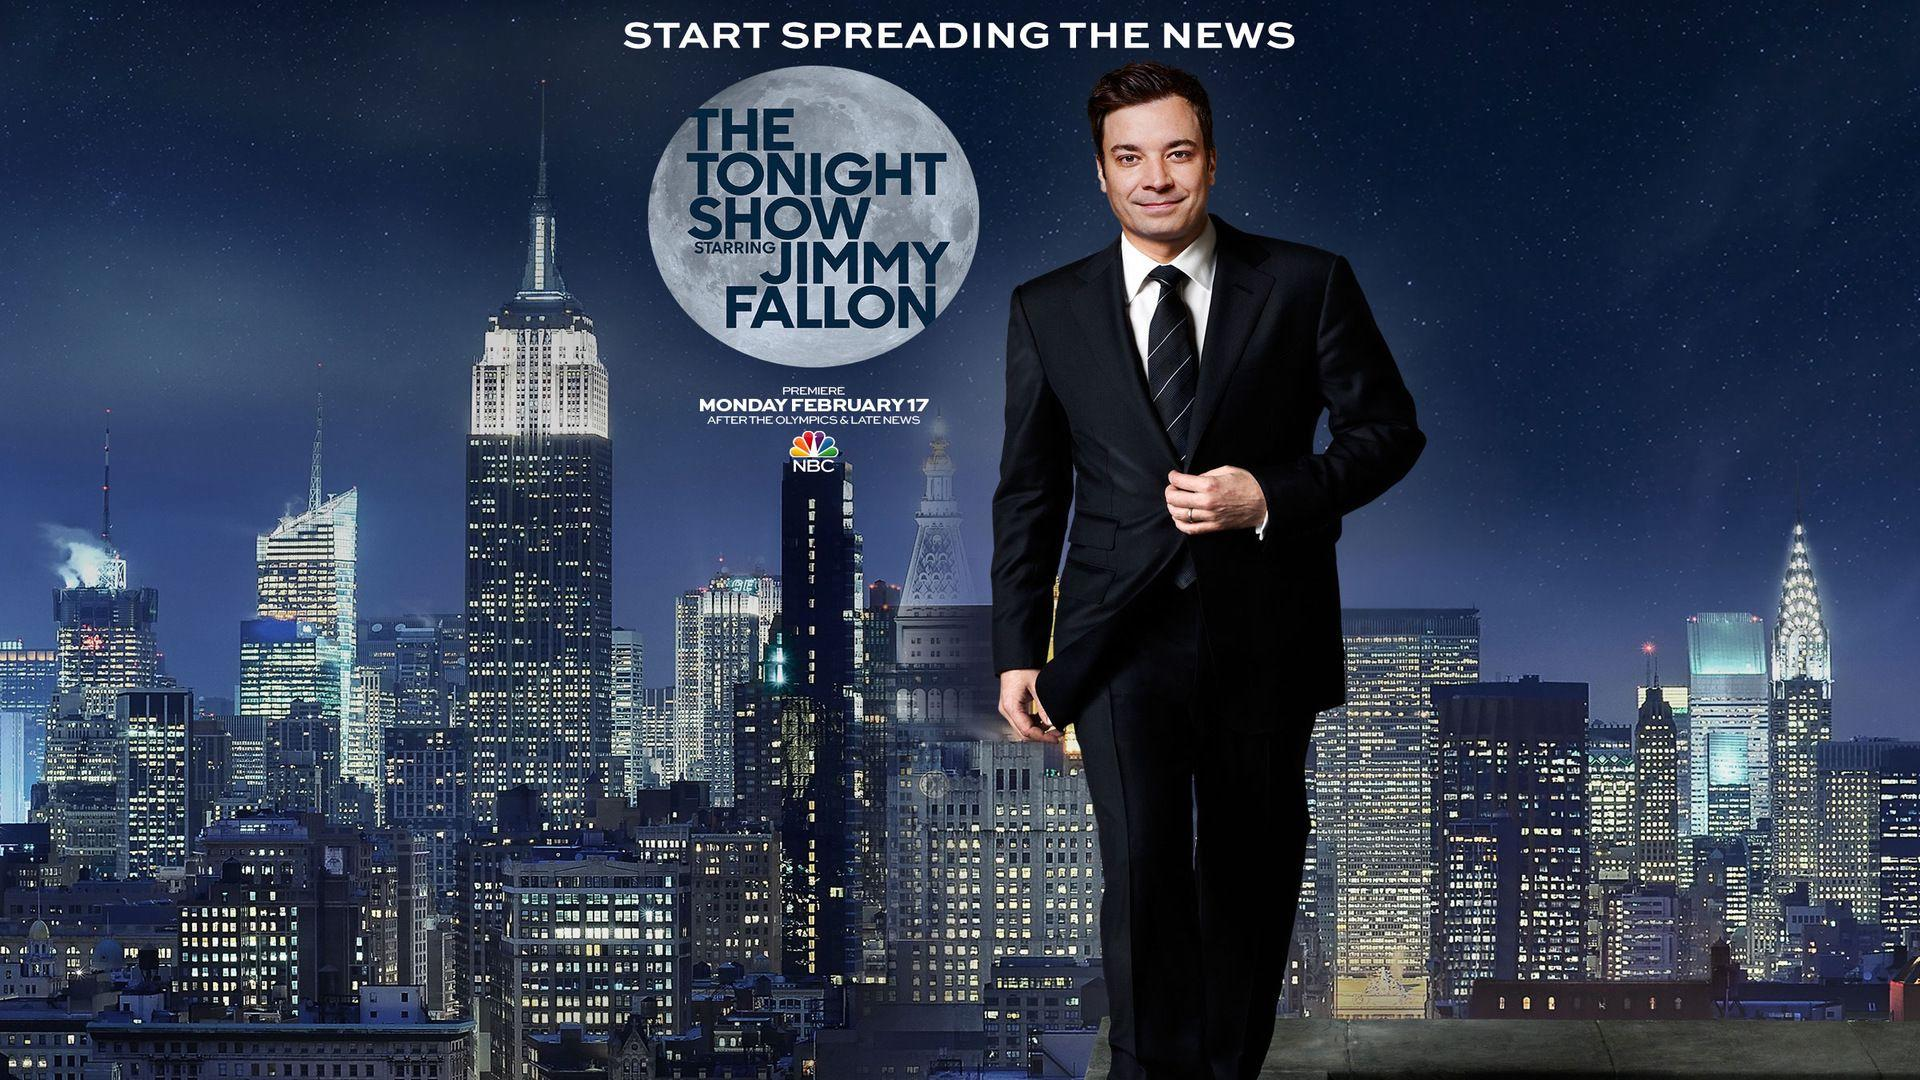 5 Reasons We All Love Jimmy Fallon